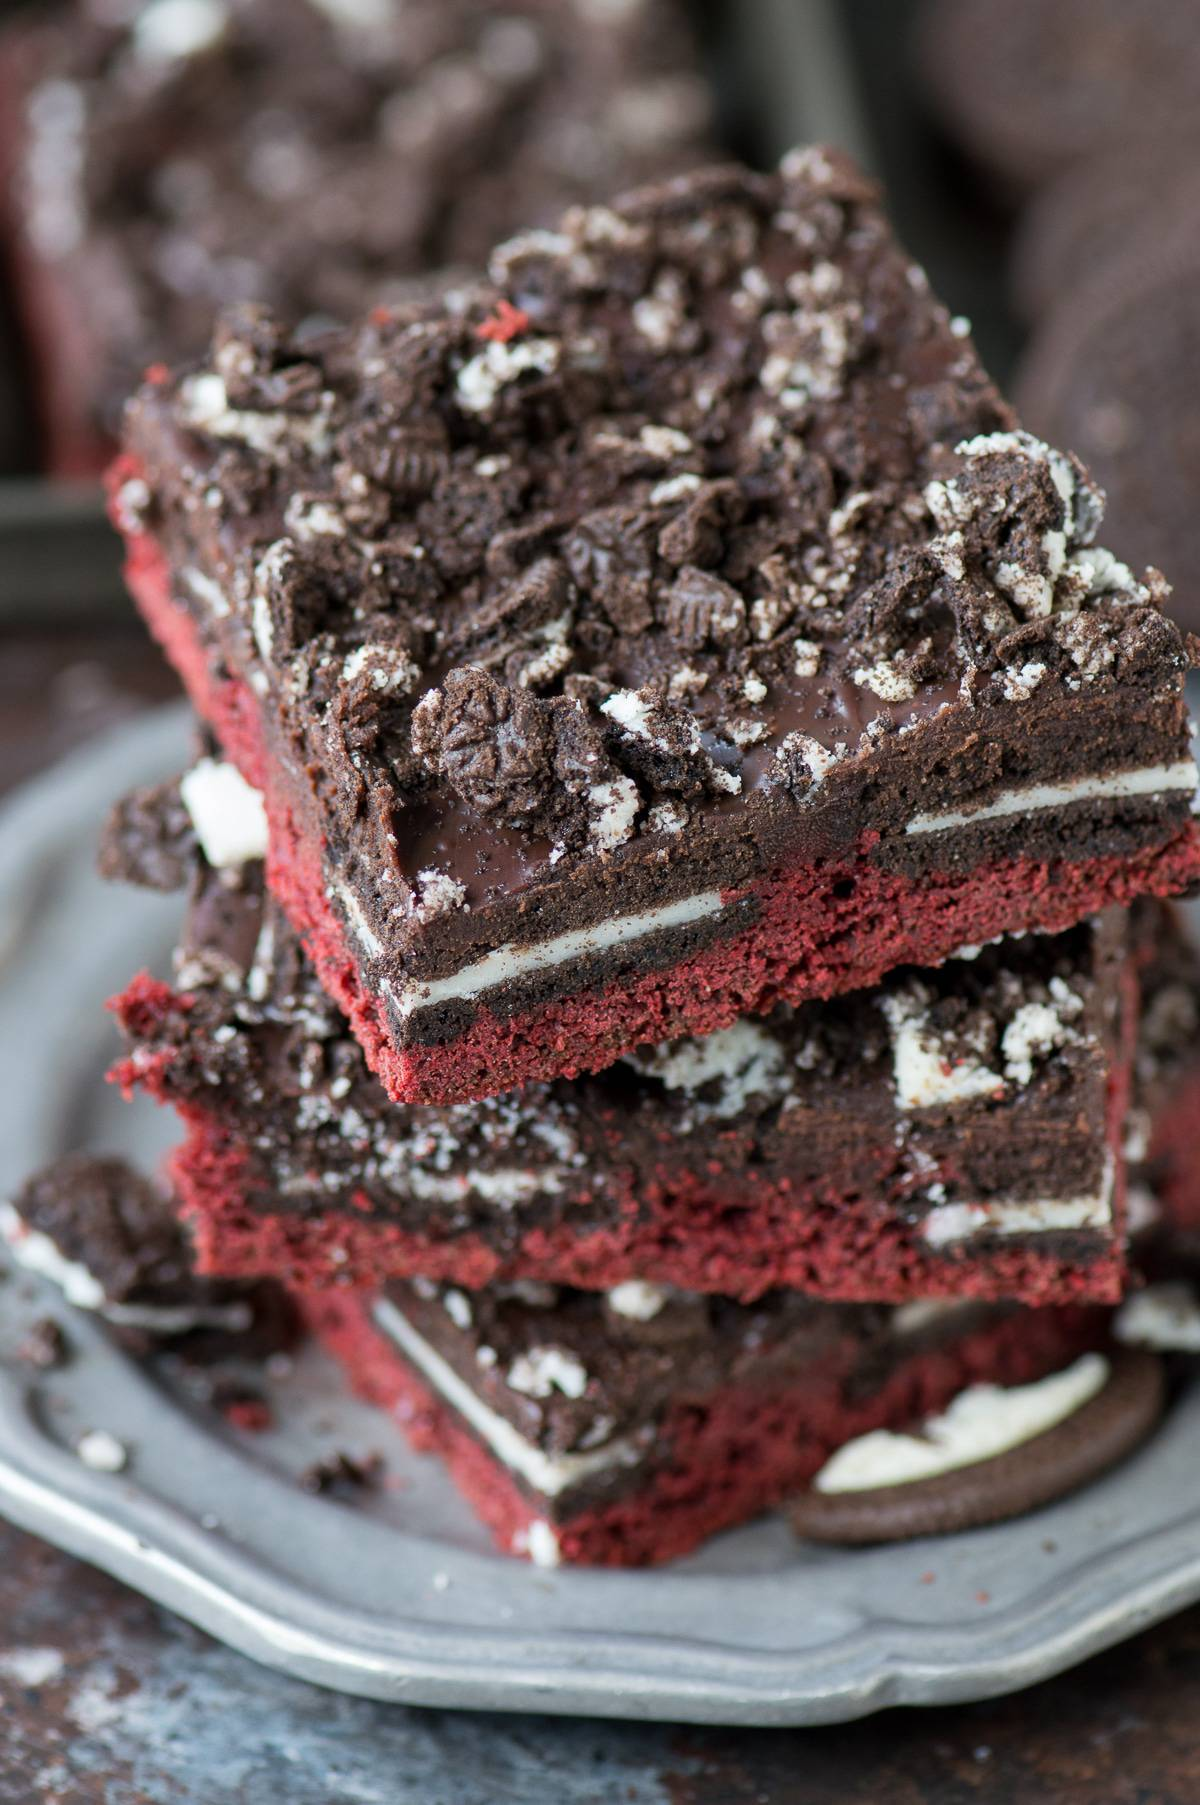 Quick red velvet stuffed oreo bars! The base of the batter starts with a box mix, then add oreos and melted chocolate.This is an easy red velvet Valentine's Day recipe!